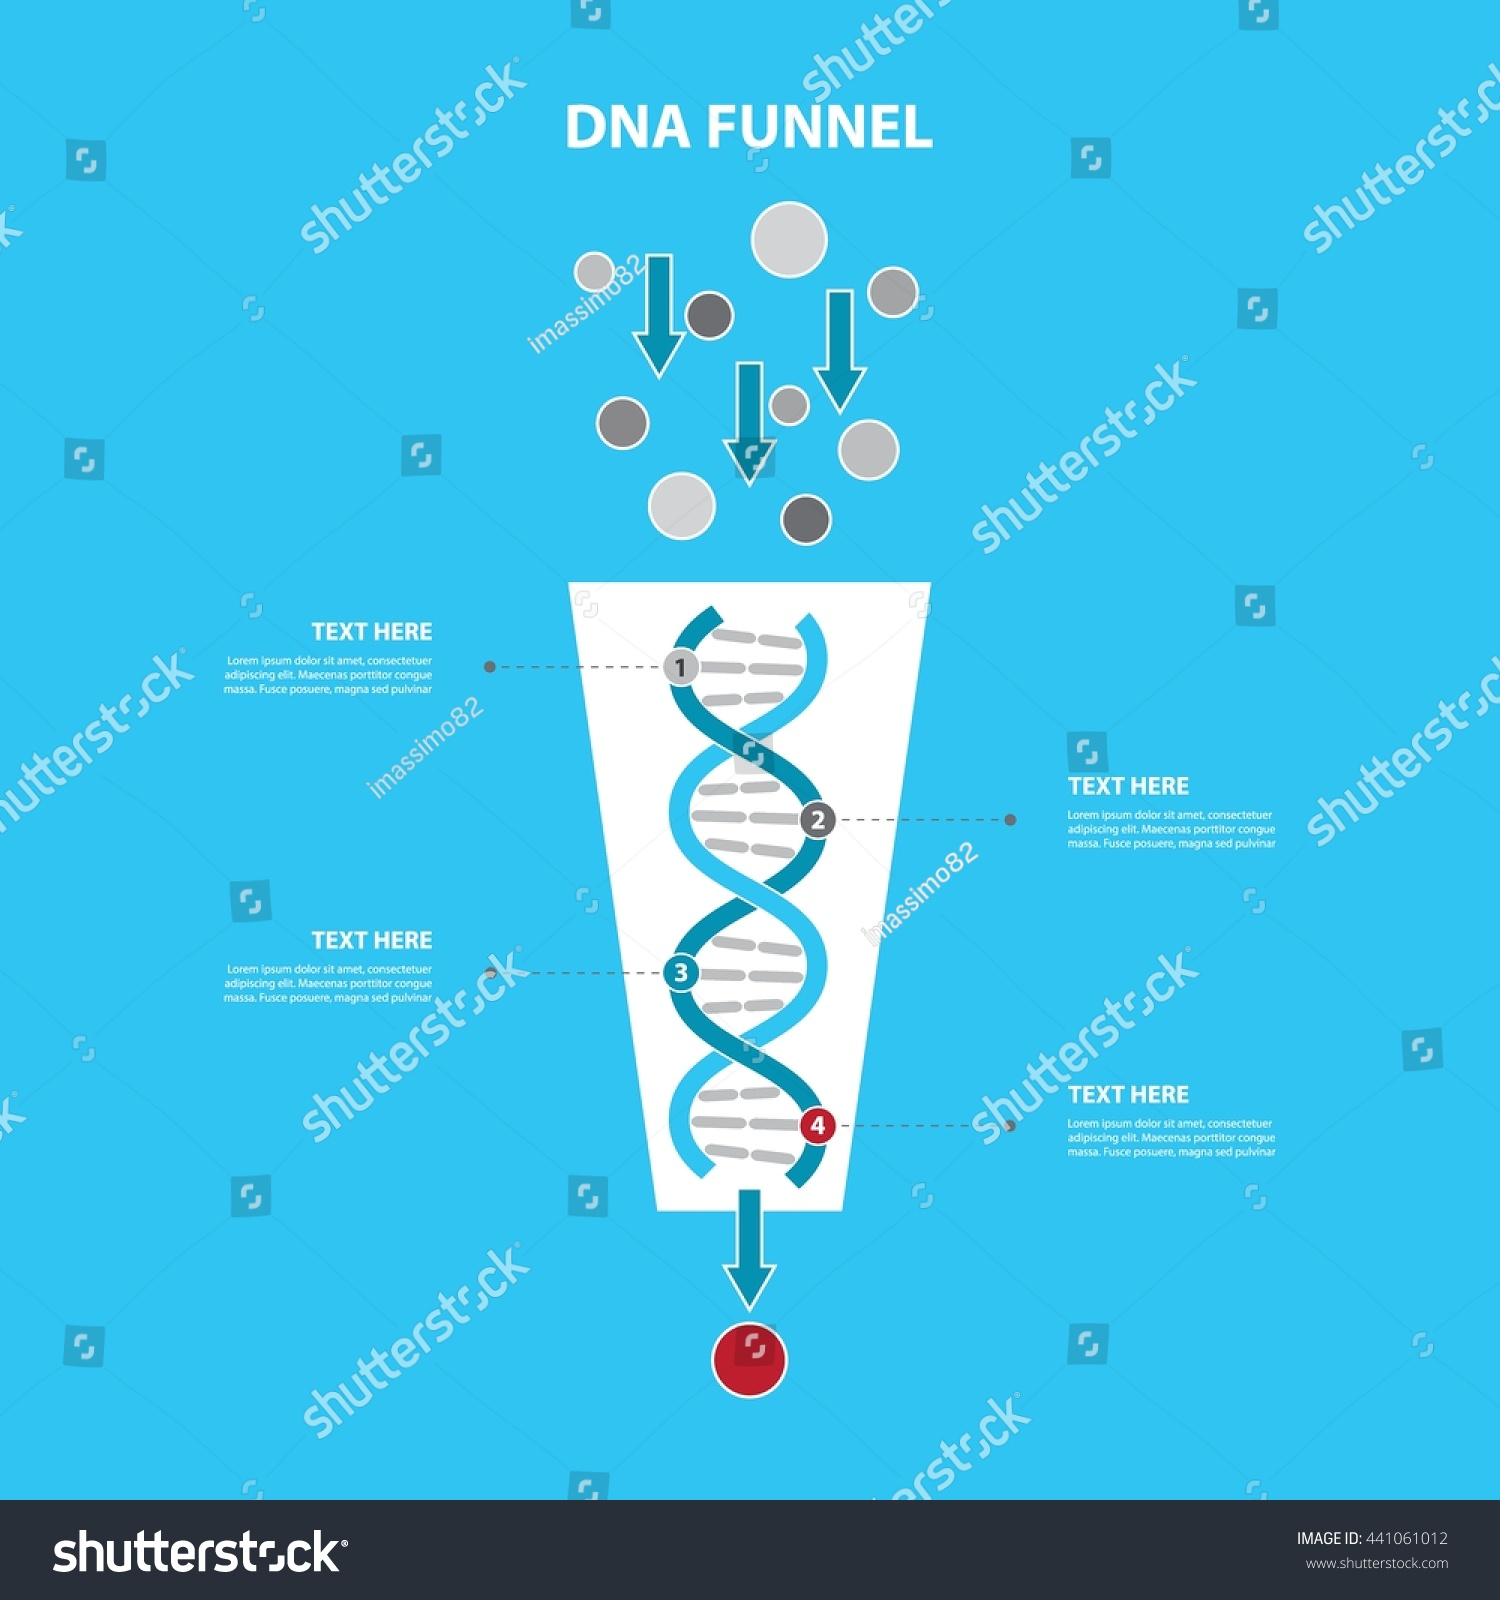 Vertical Conversion Funnel Dna Timeline Process Stock Vector ...